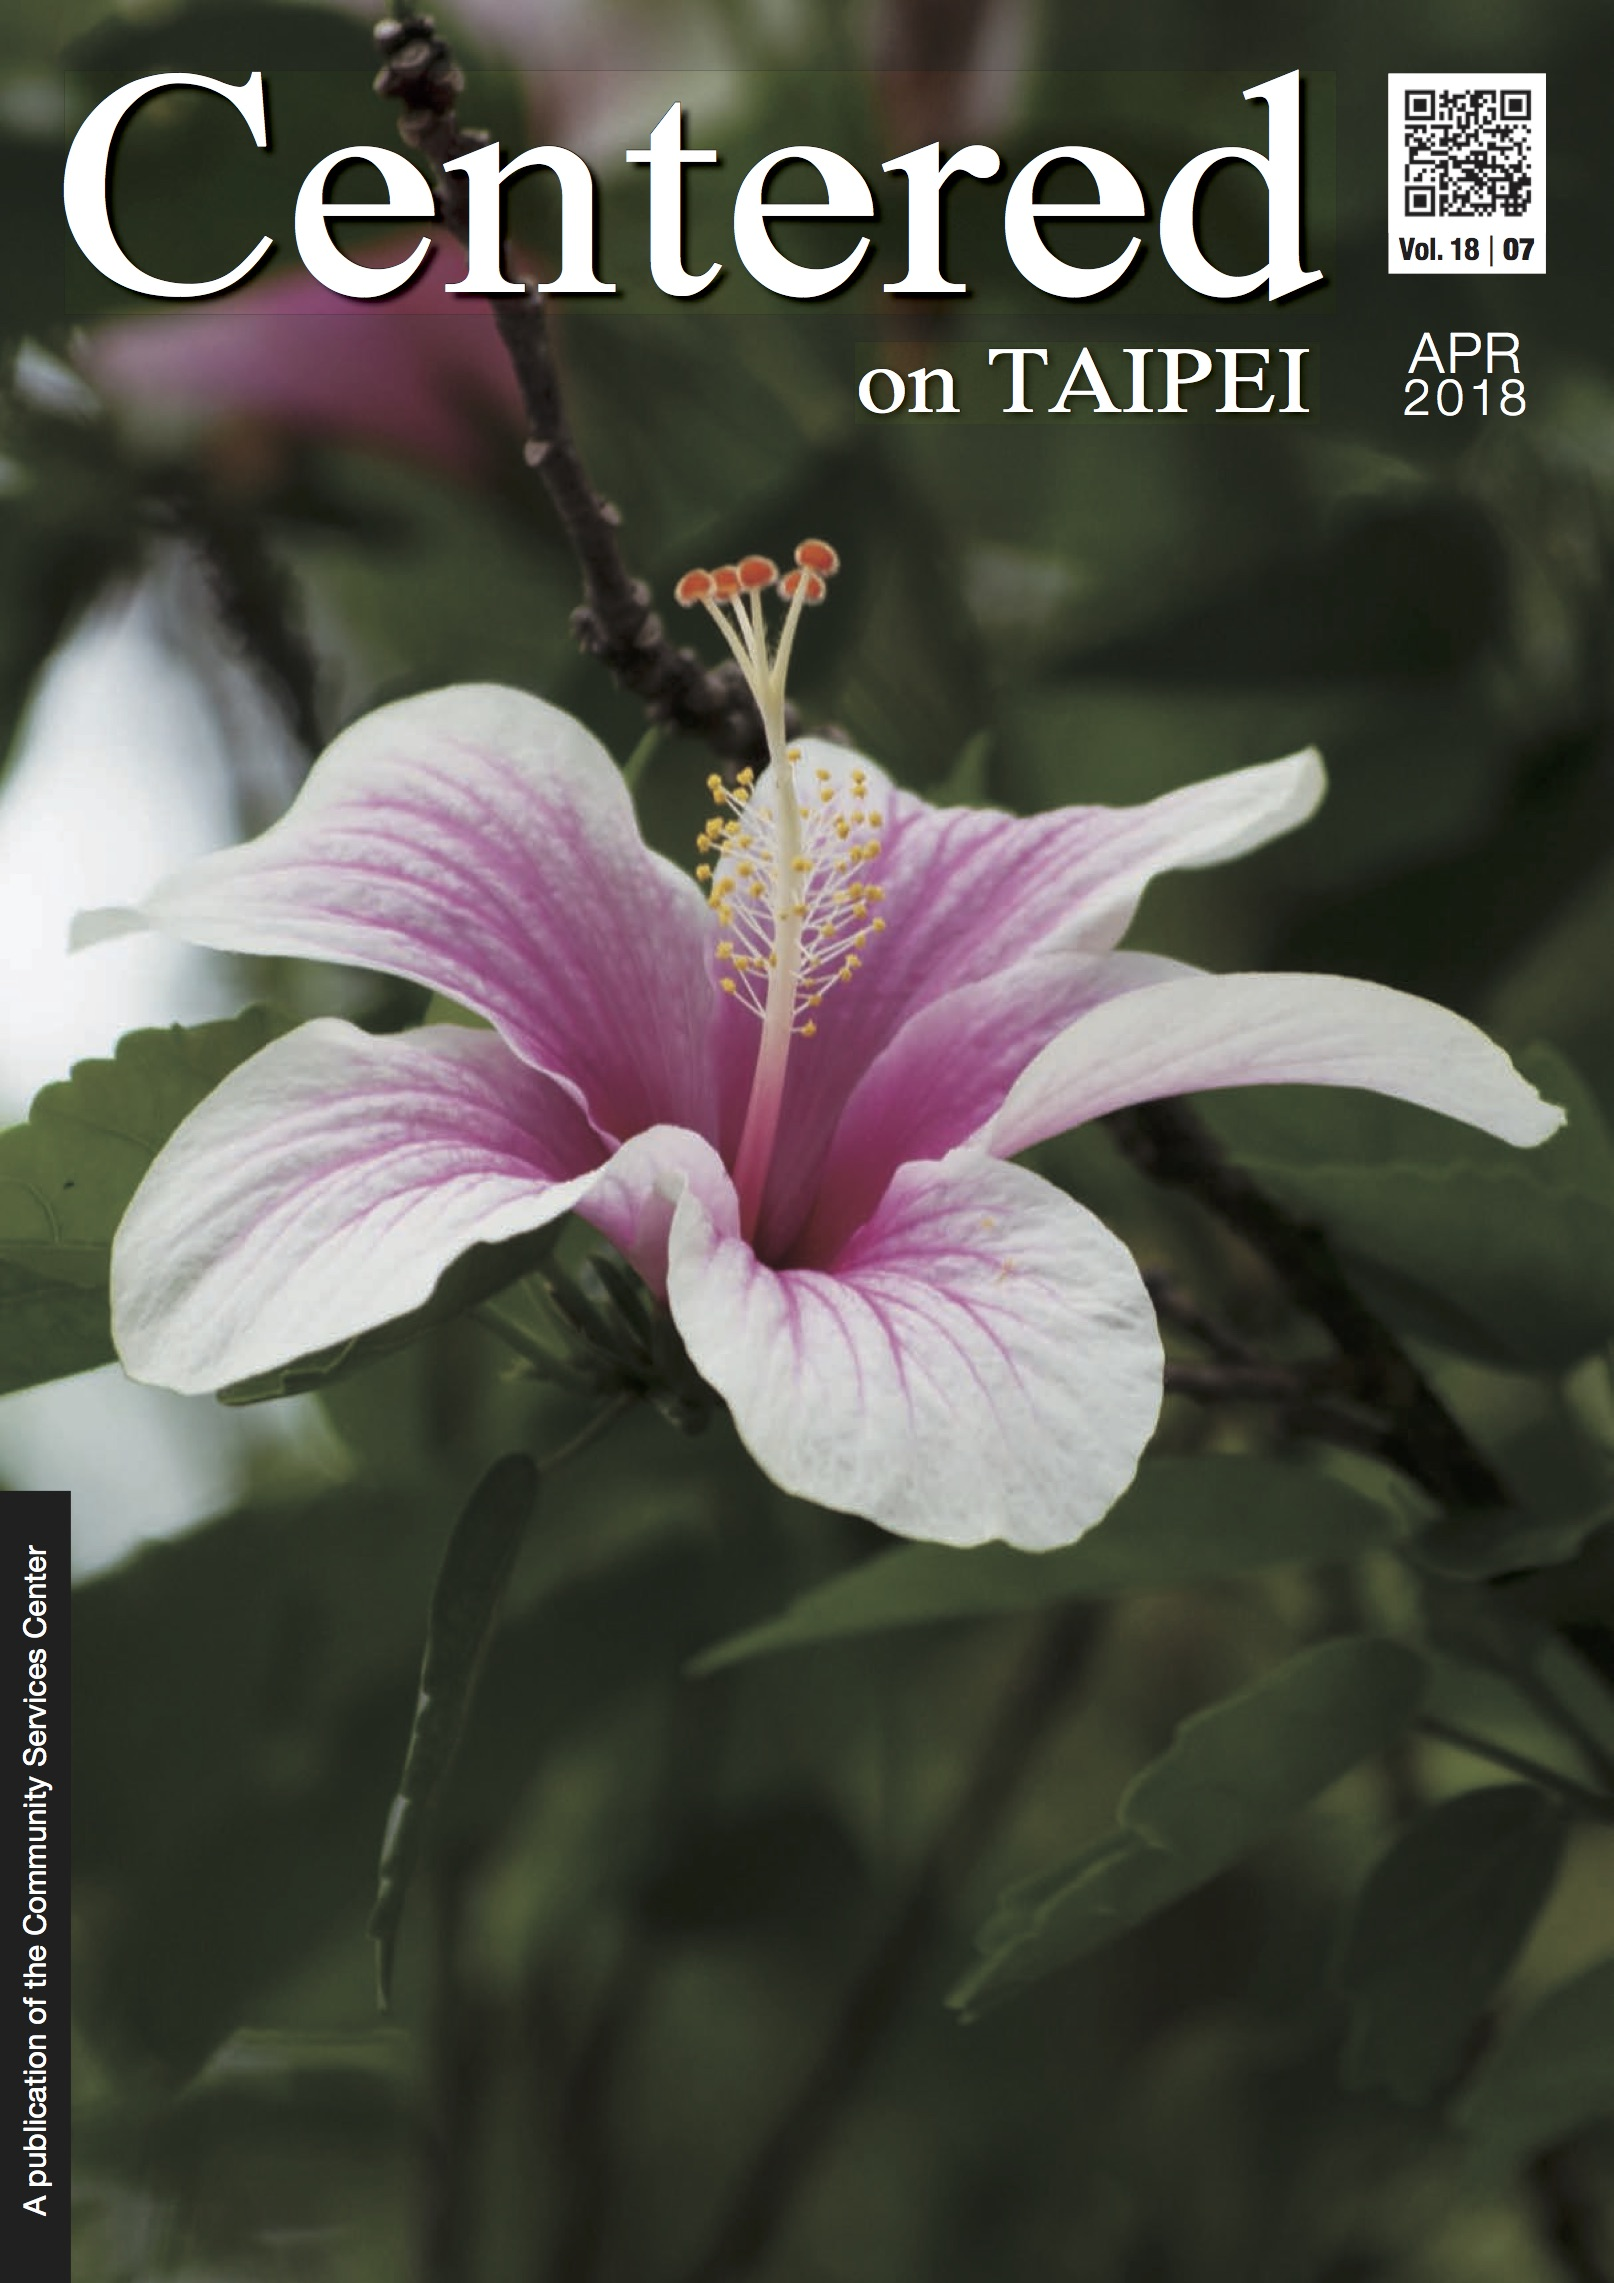 Our Magazine: Centered on Taipei